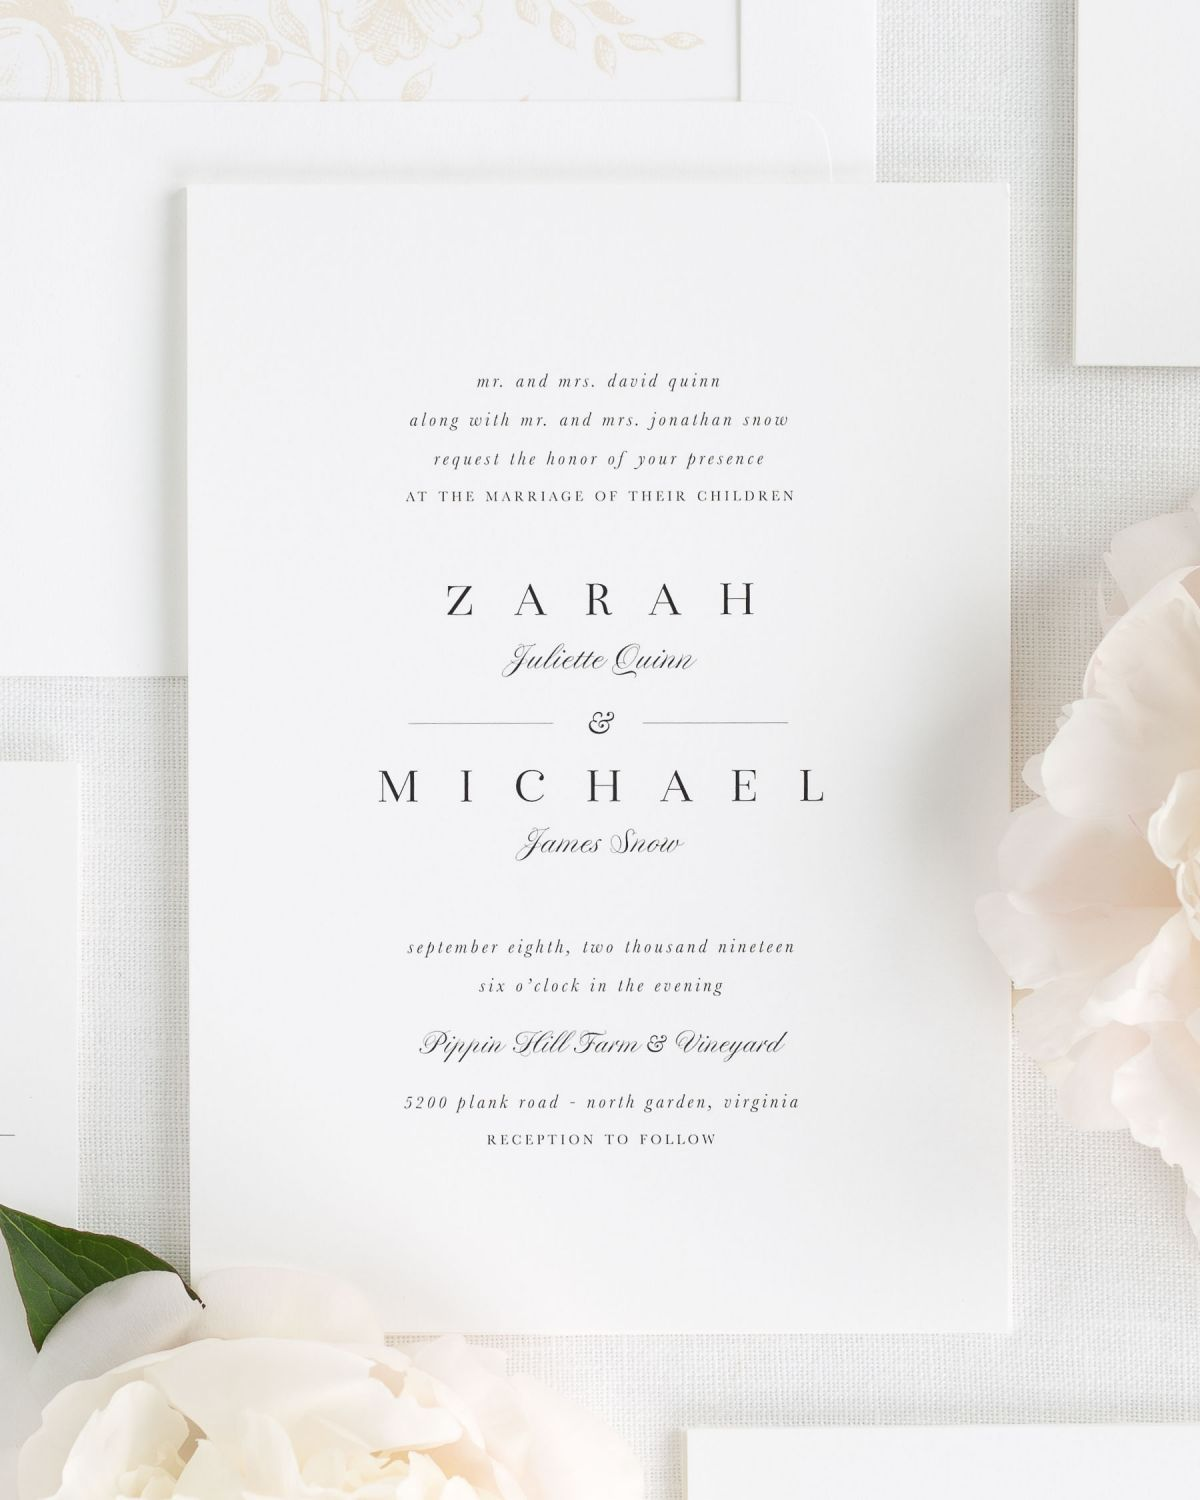 Zarah Wedding Invitations Invitacion Boda Originales